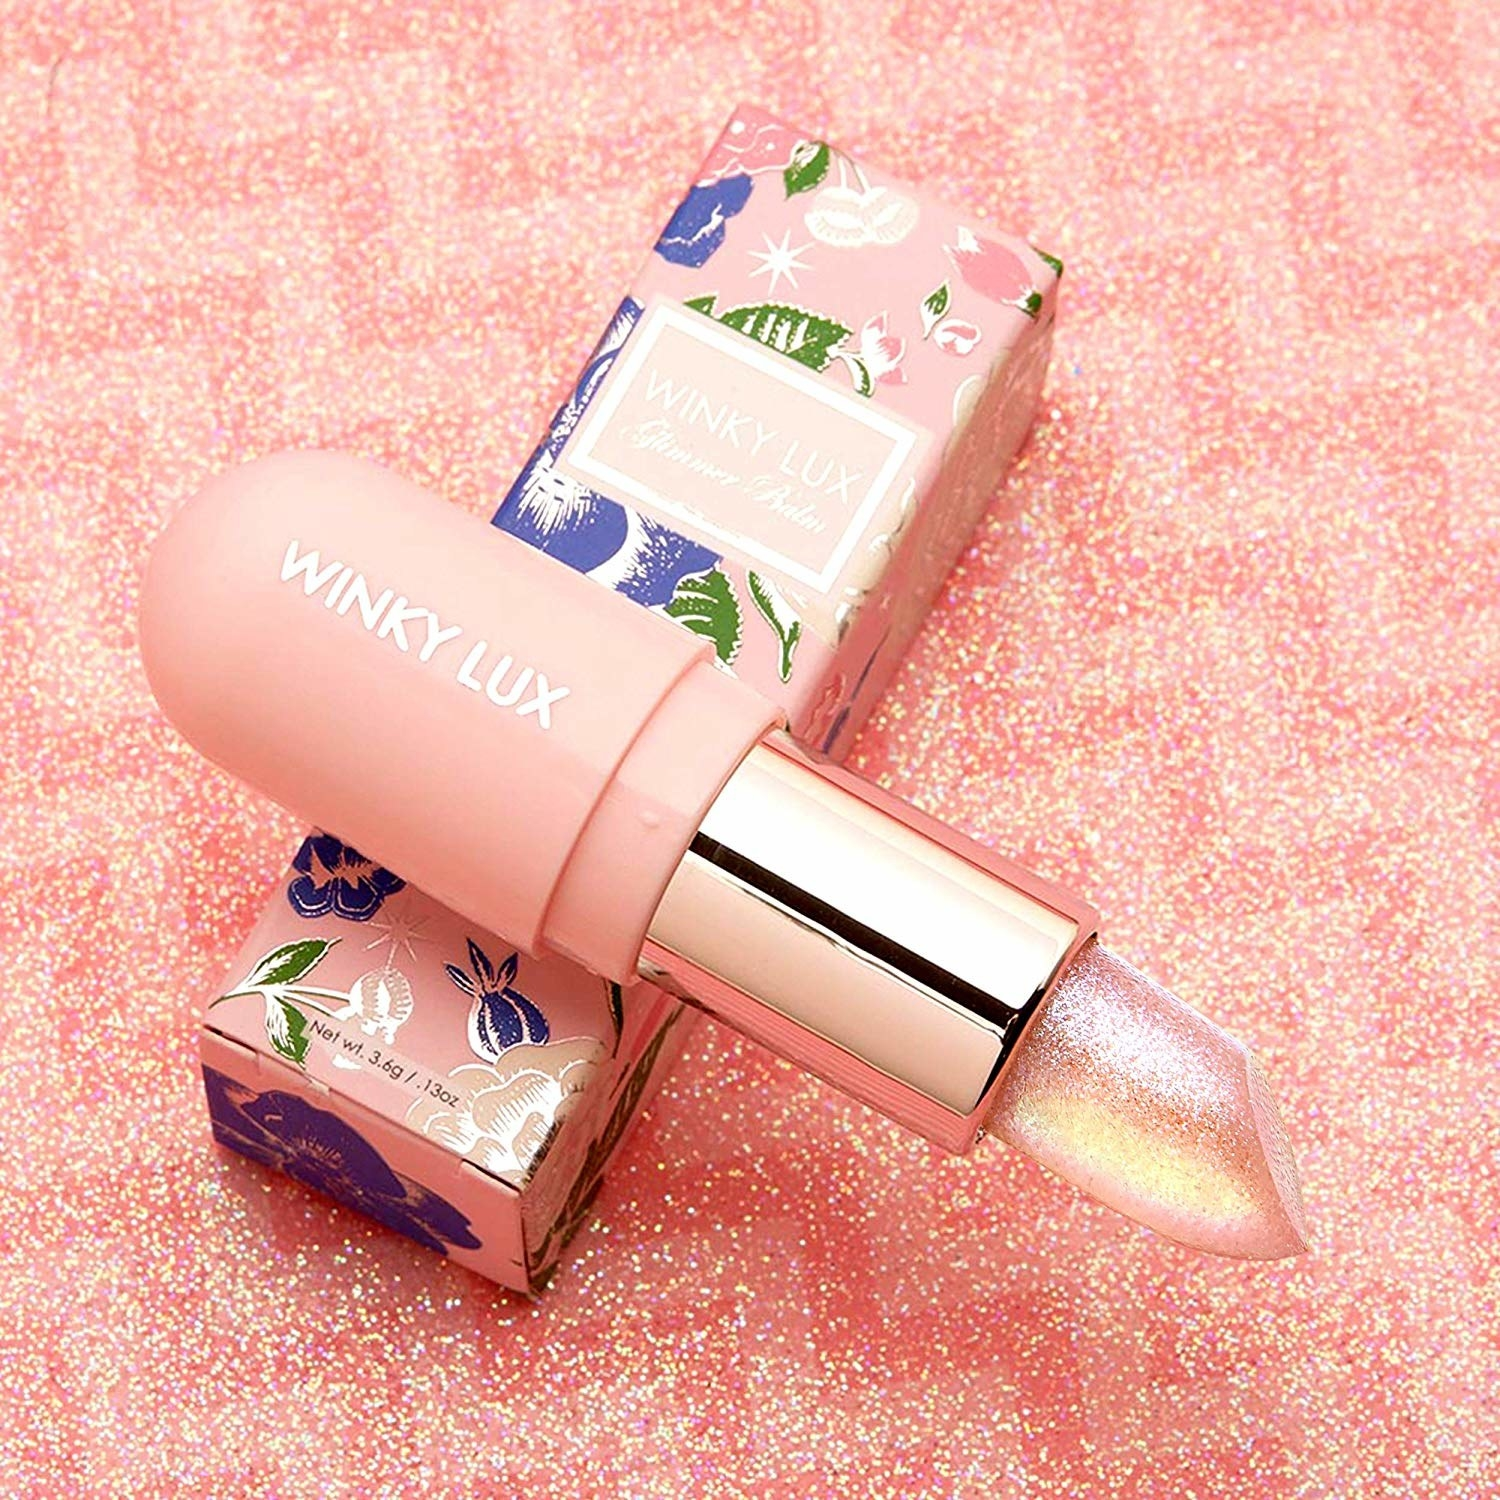 The lipstick with a sparkly light pink color